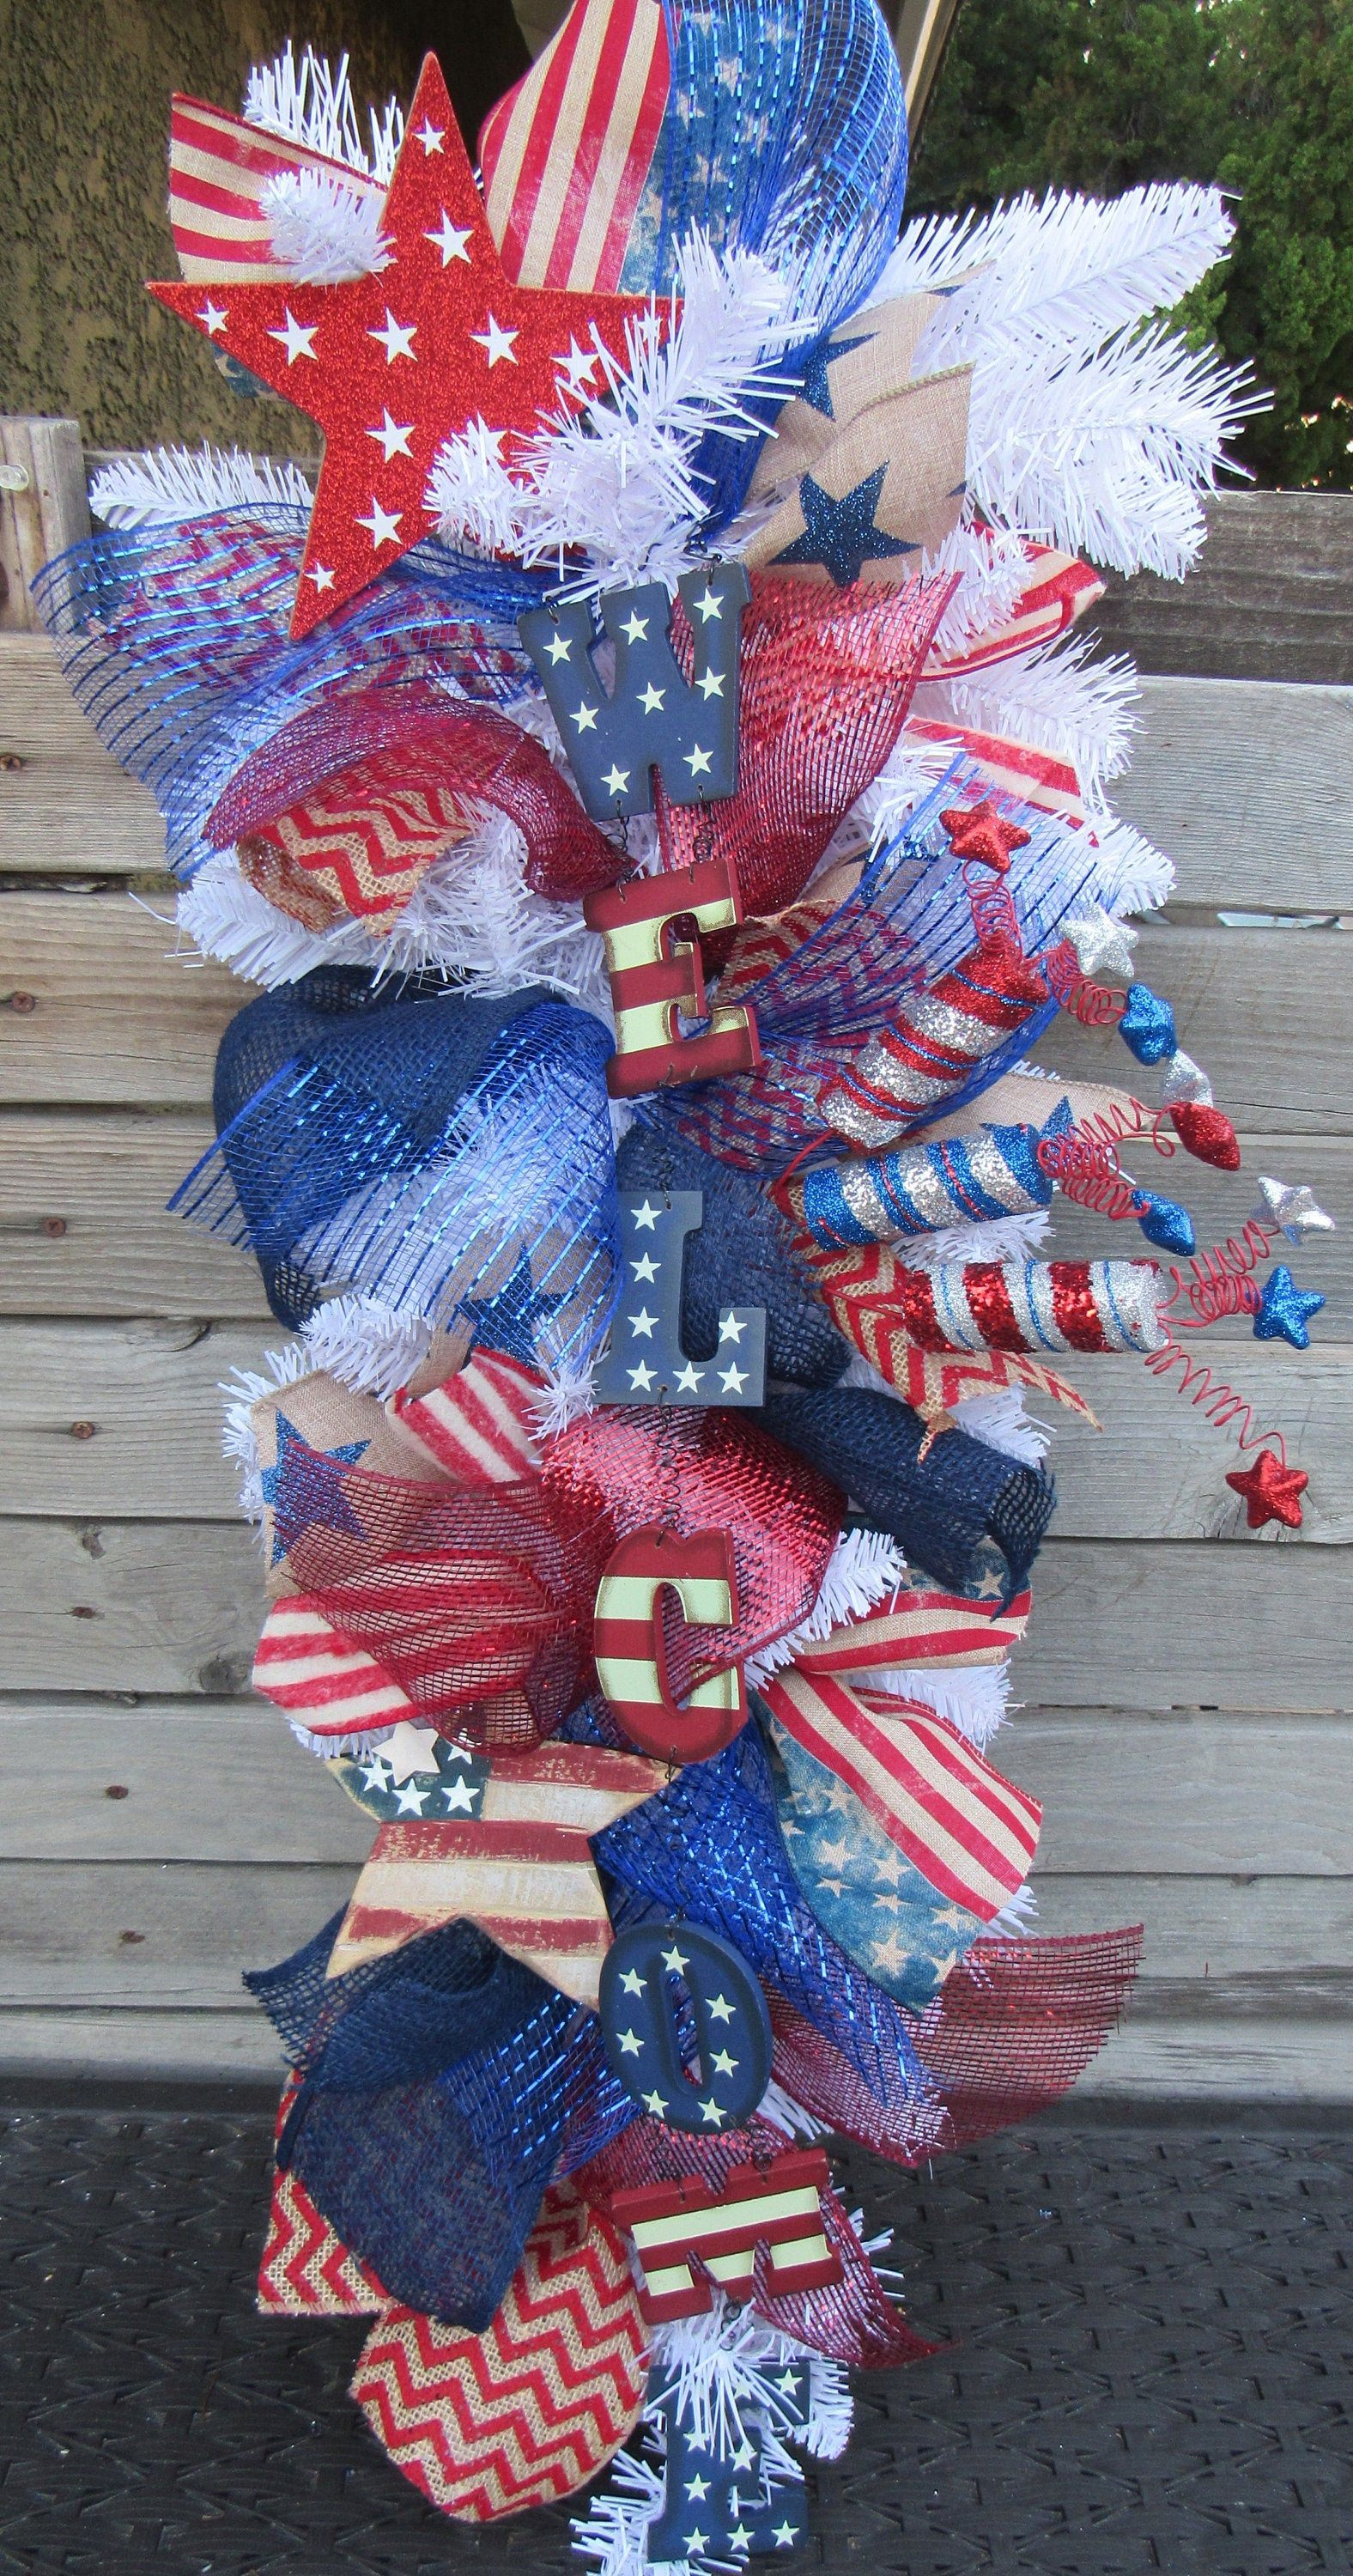 4th Of July Welcome Wreath July 4th Swag Patriotic Door Decor Welcome Red White Blue Wreath Flag Star Door Decor Red White Blue Wreath Blue Wreath Wreath Decor